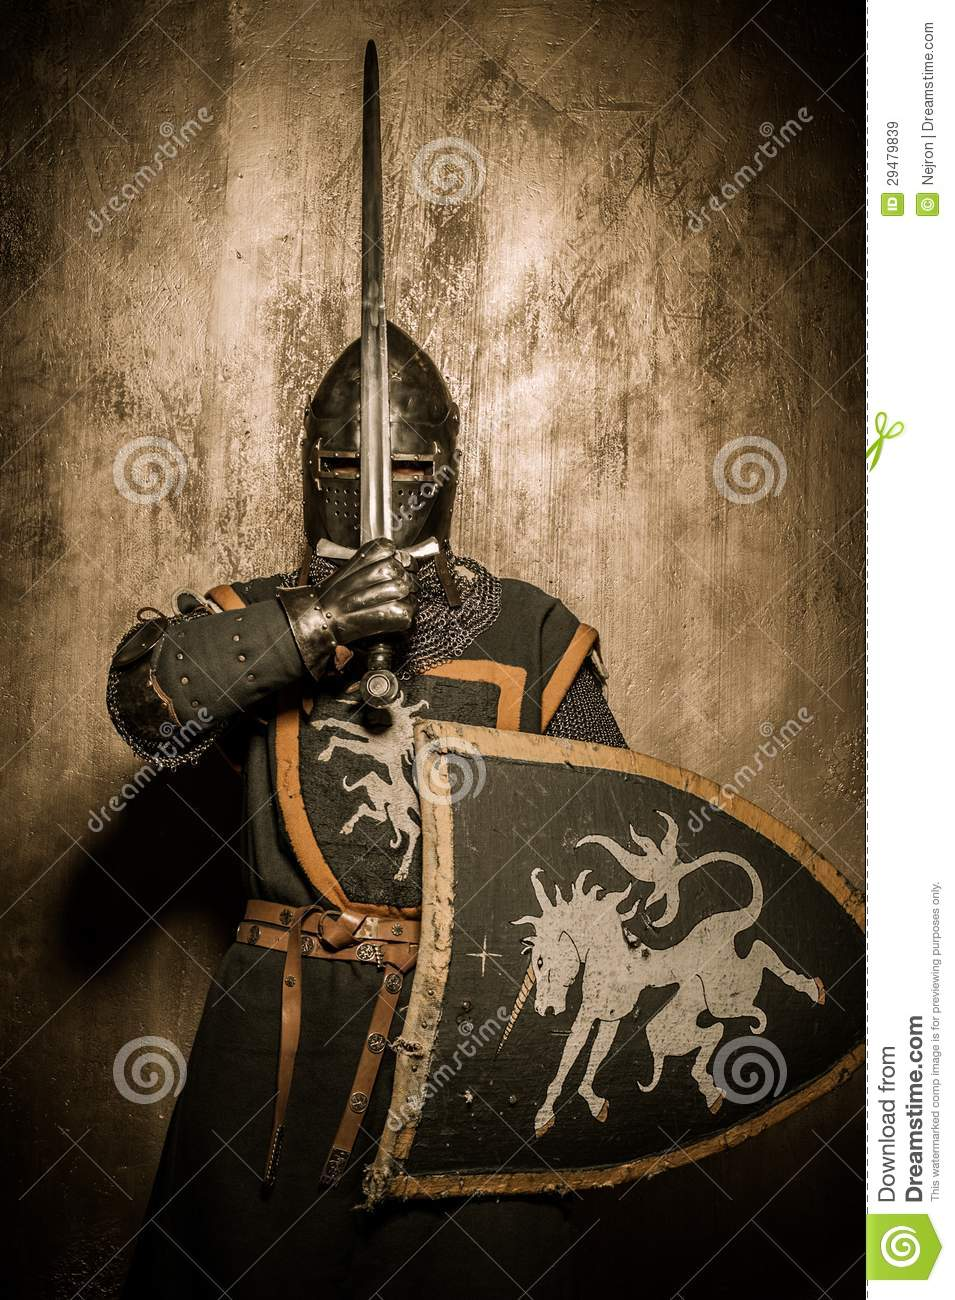 More similar stock images of   Knight with shield  Knight With Shield